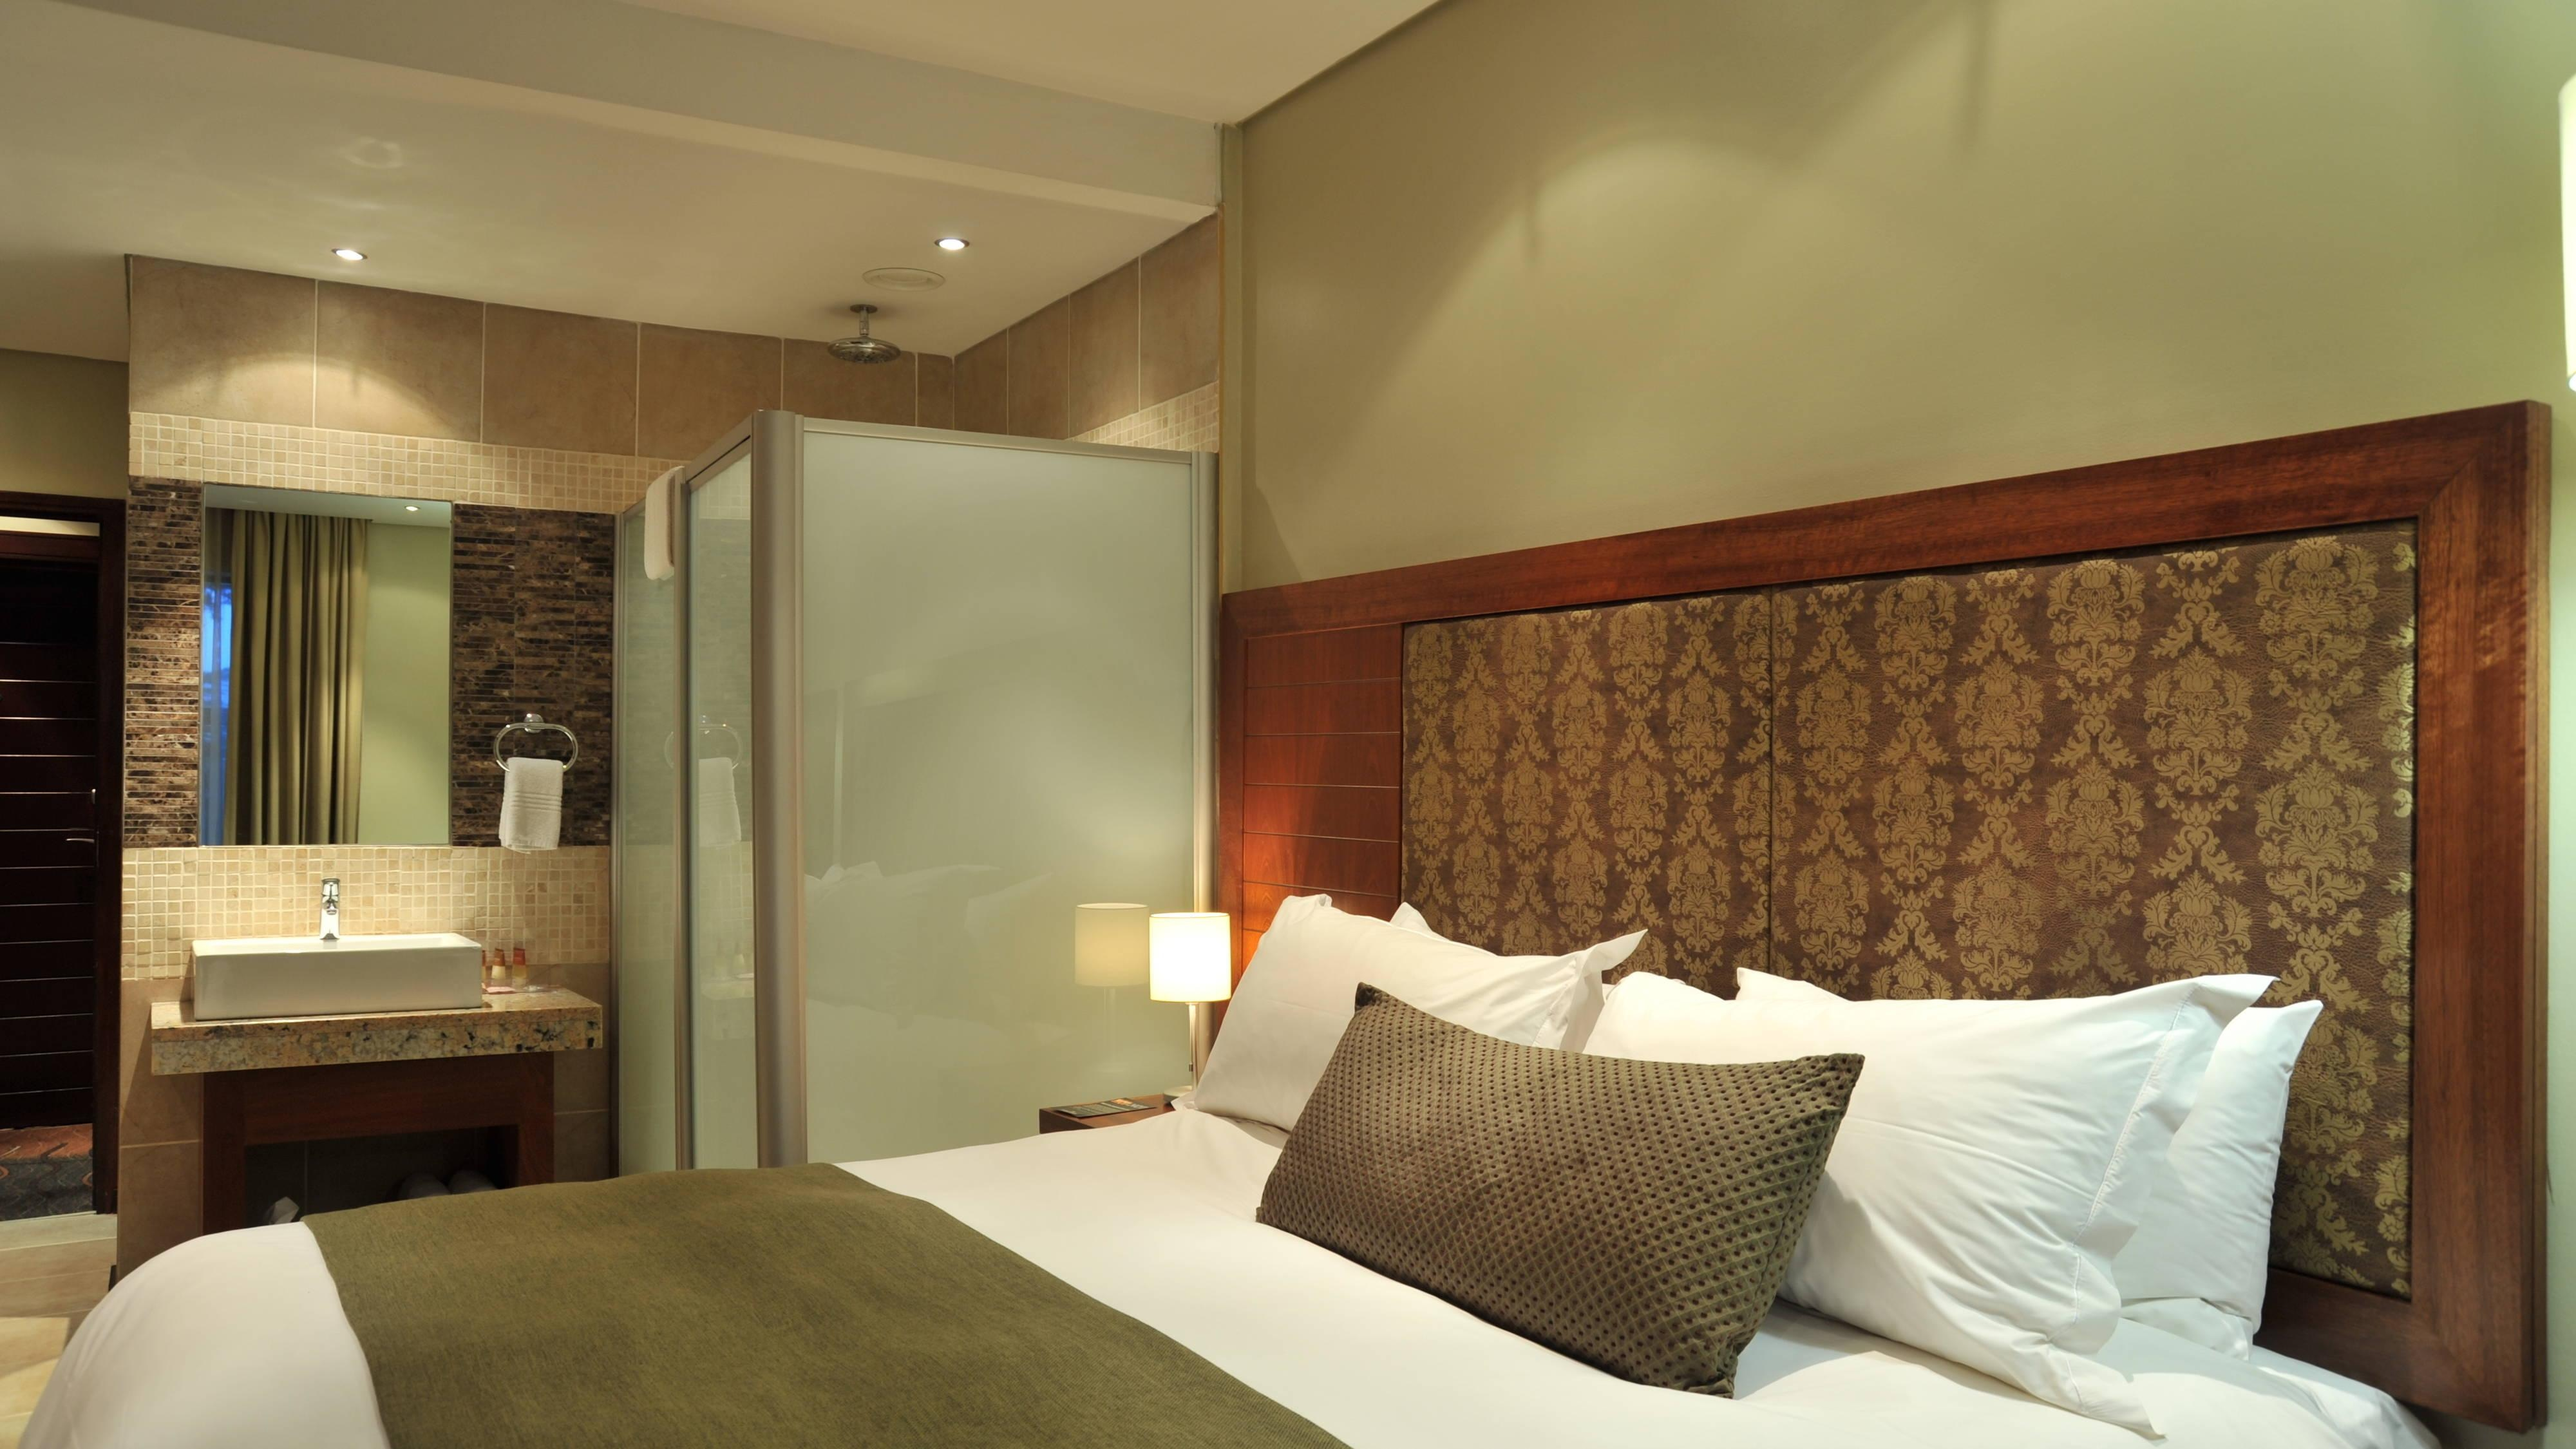 Clarens deluxe guest room accommodation